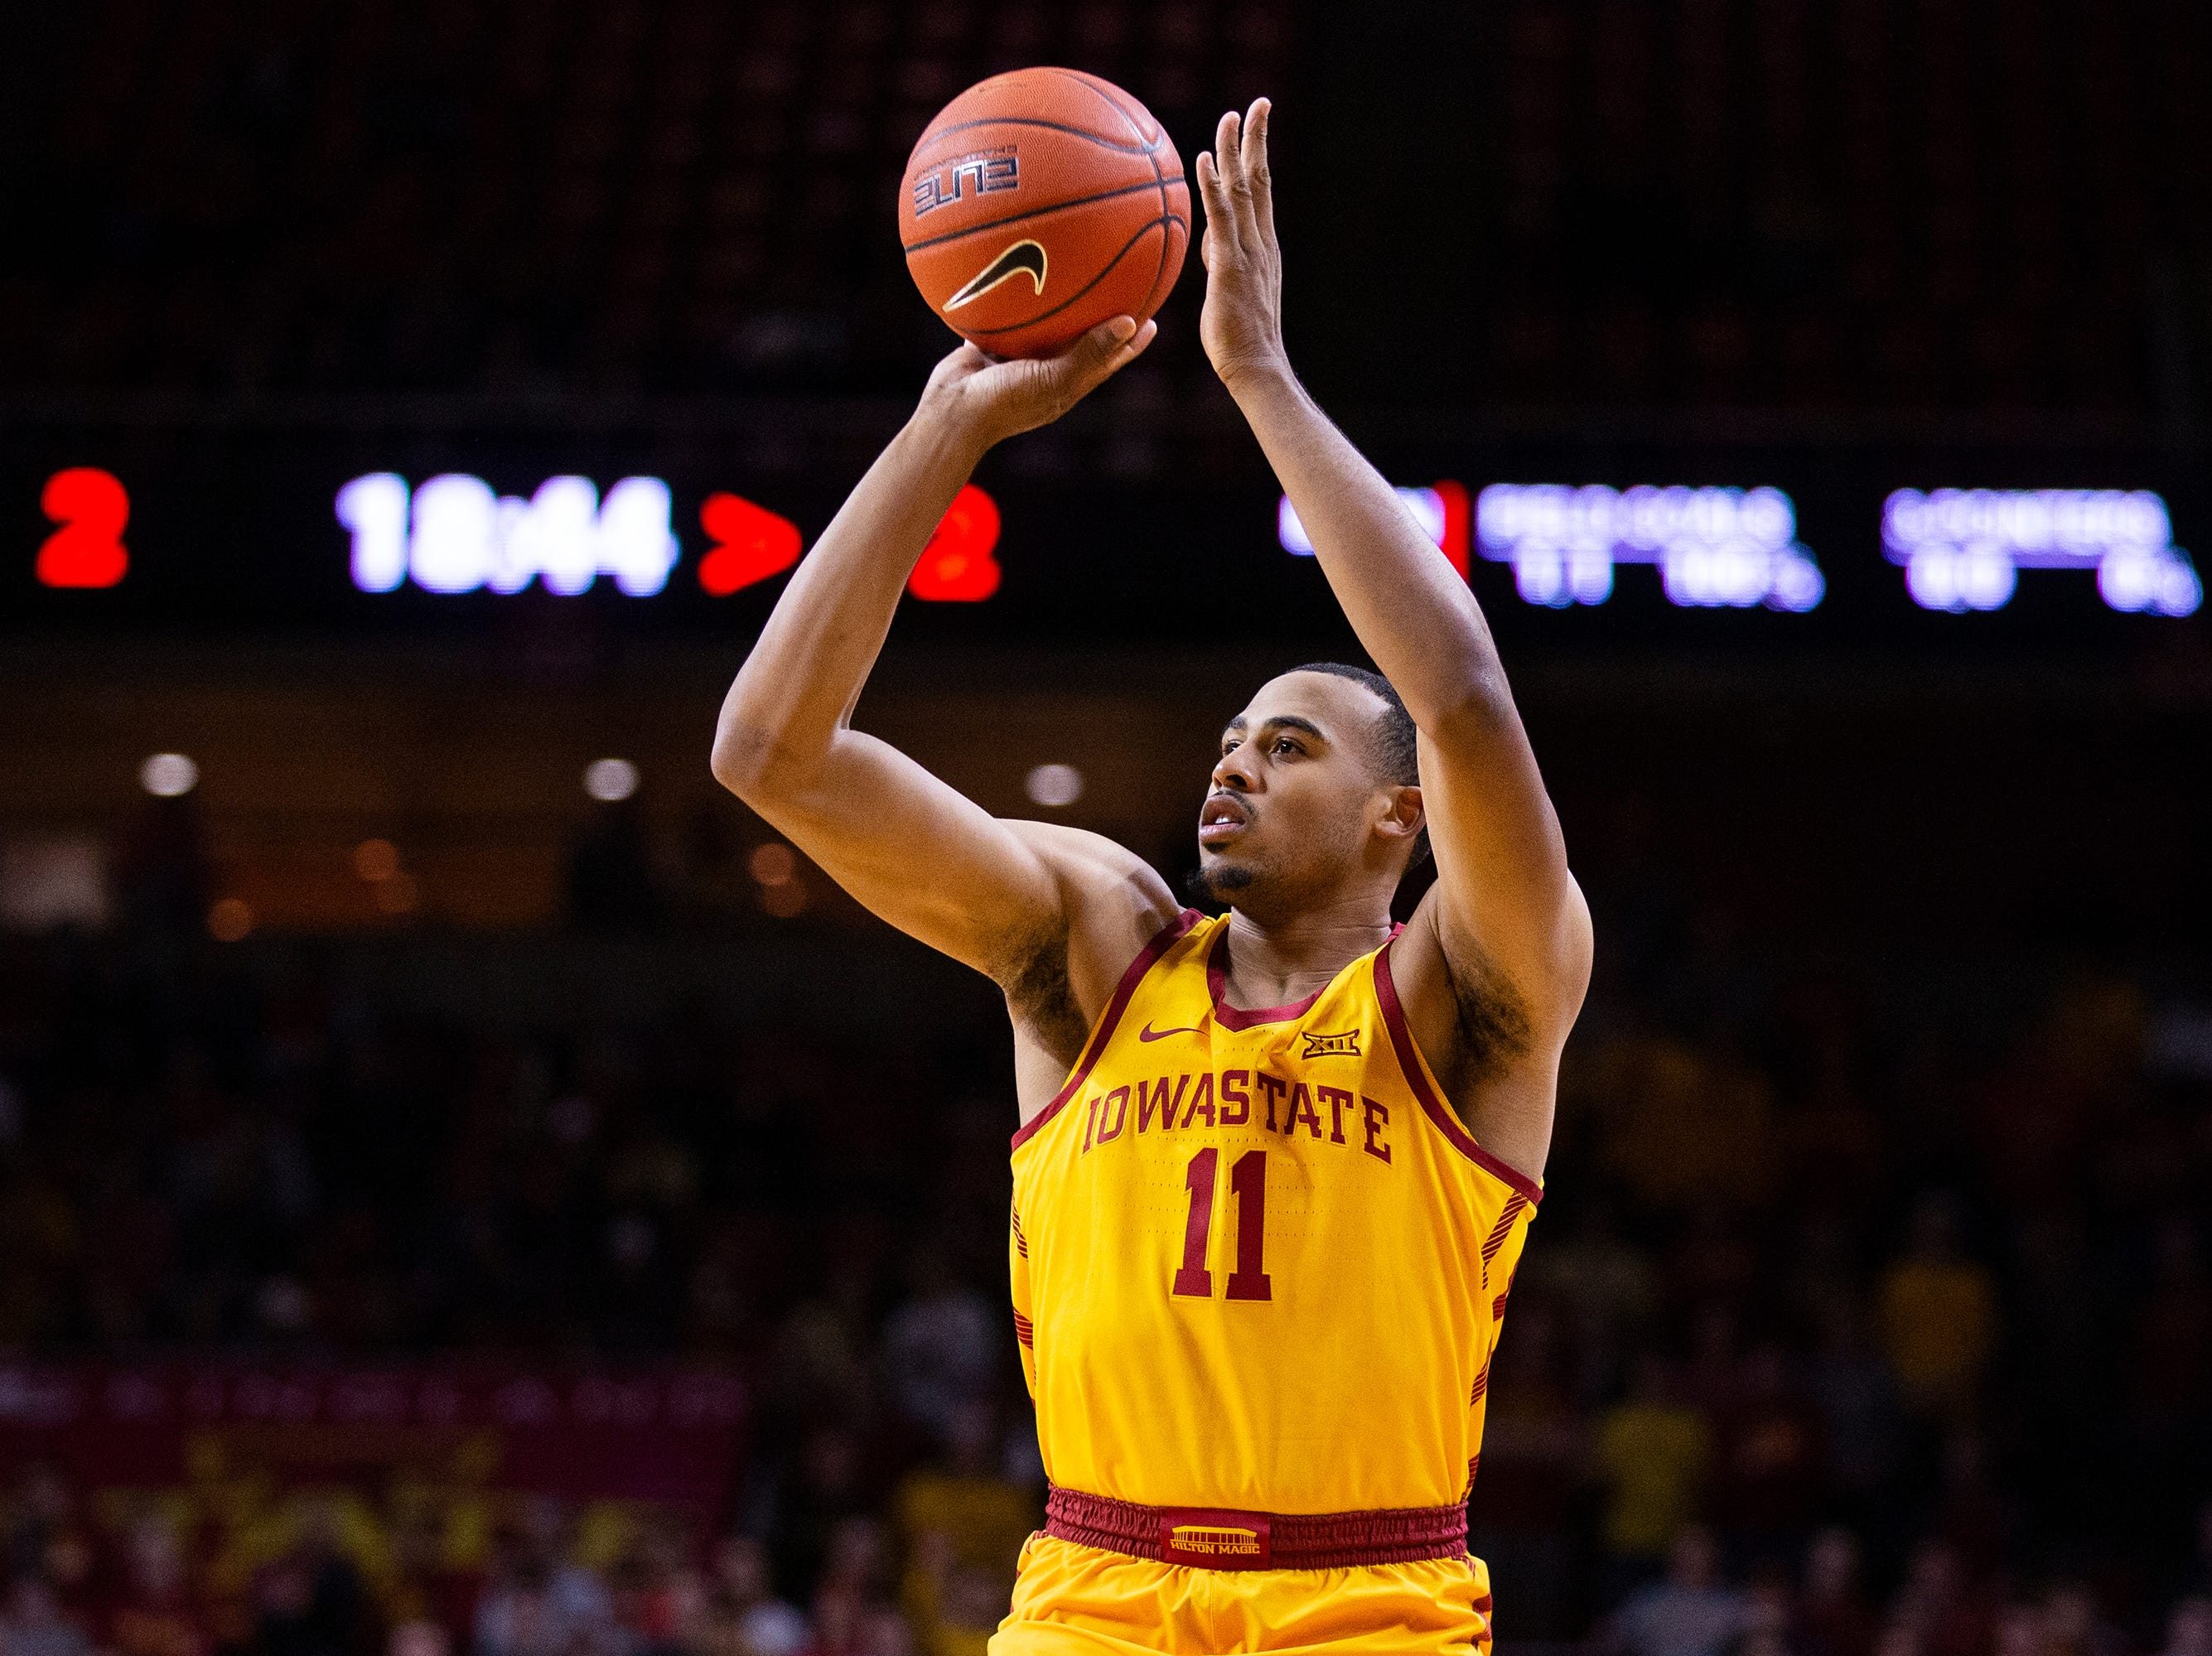 Iowa State's Talen Horton-Tucker shoots the ball during the Iowa State men's basketball game against North Dakota State University on Monday, Dec. 3, 2018, in Hilton Coliseum.